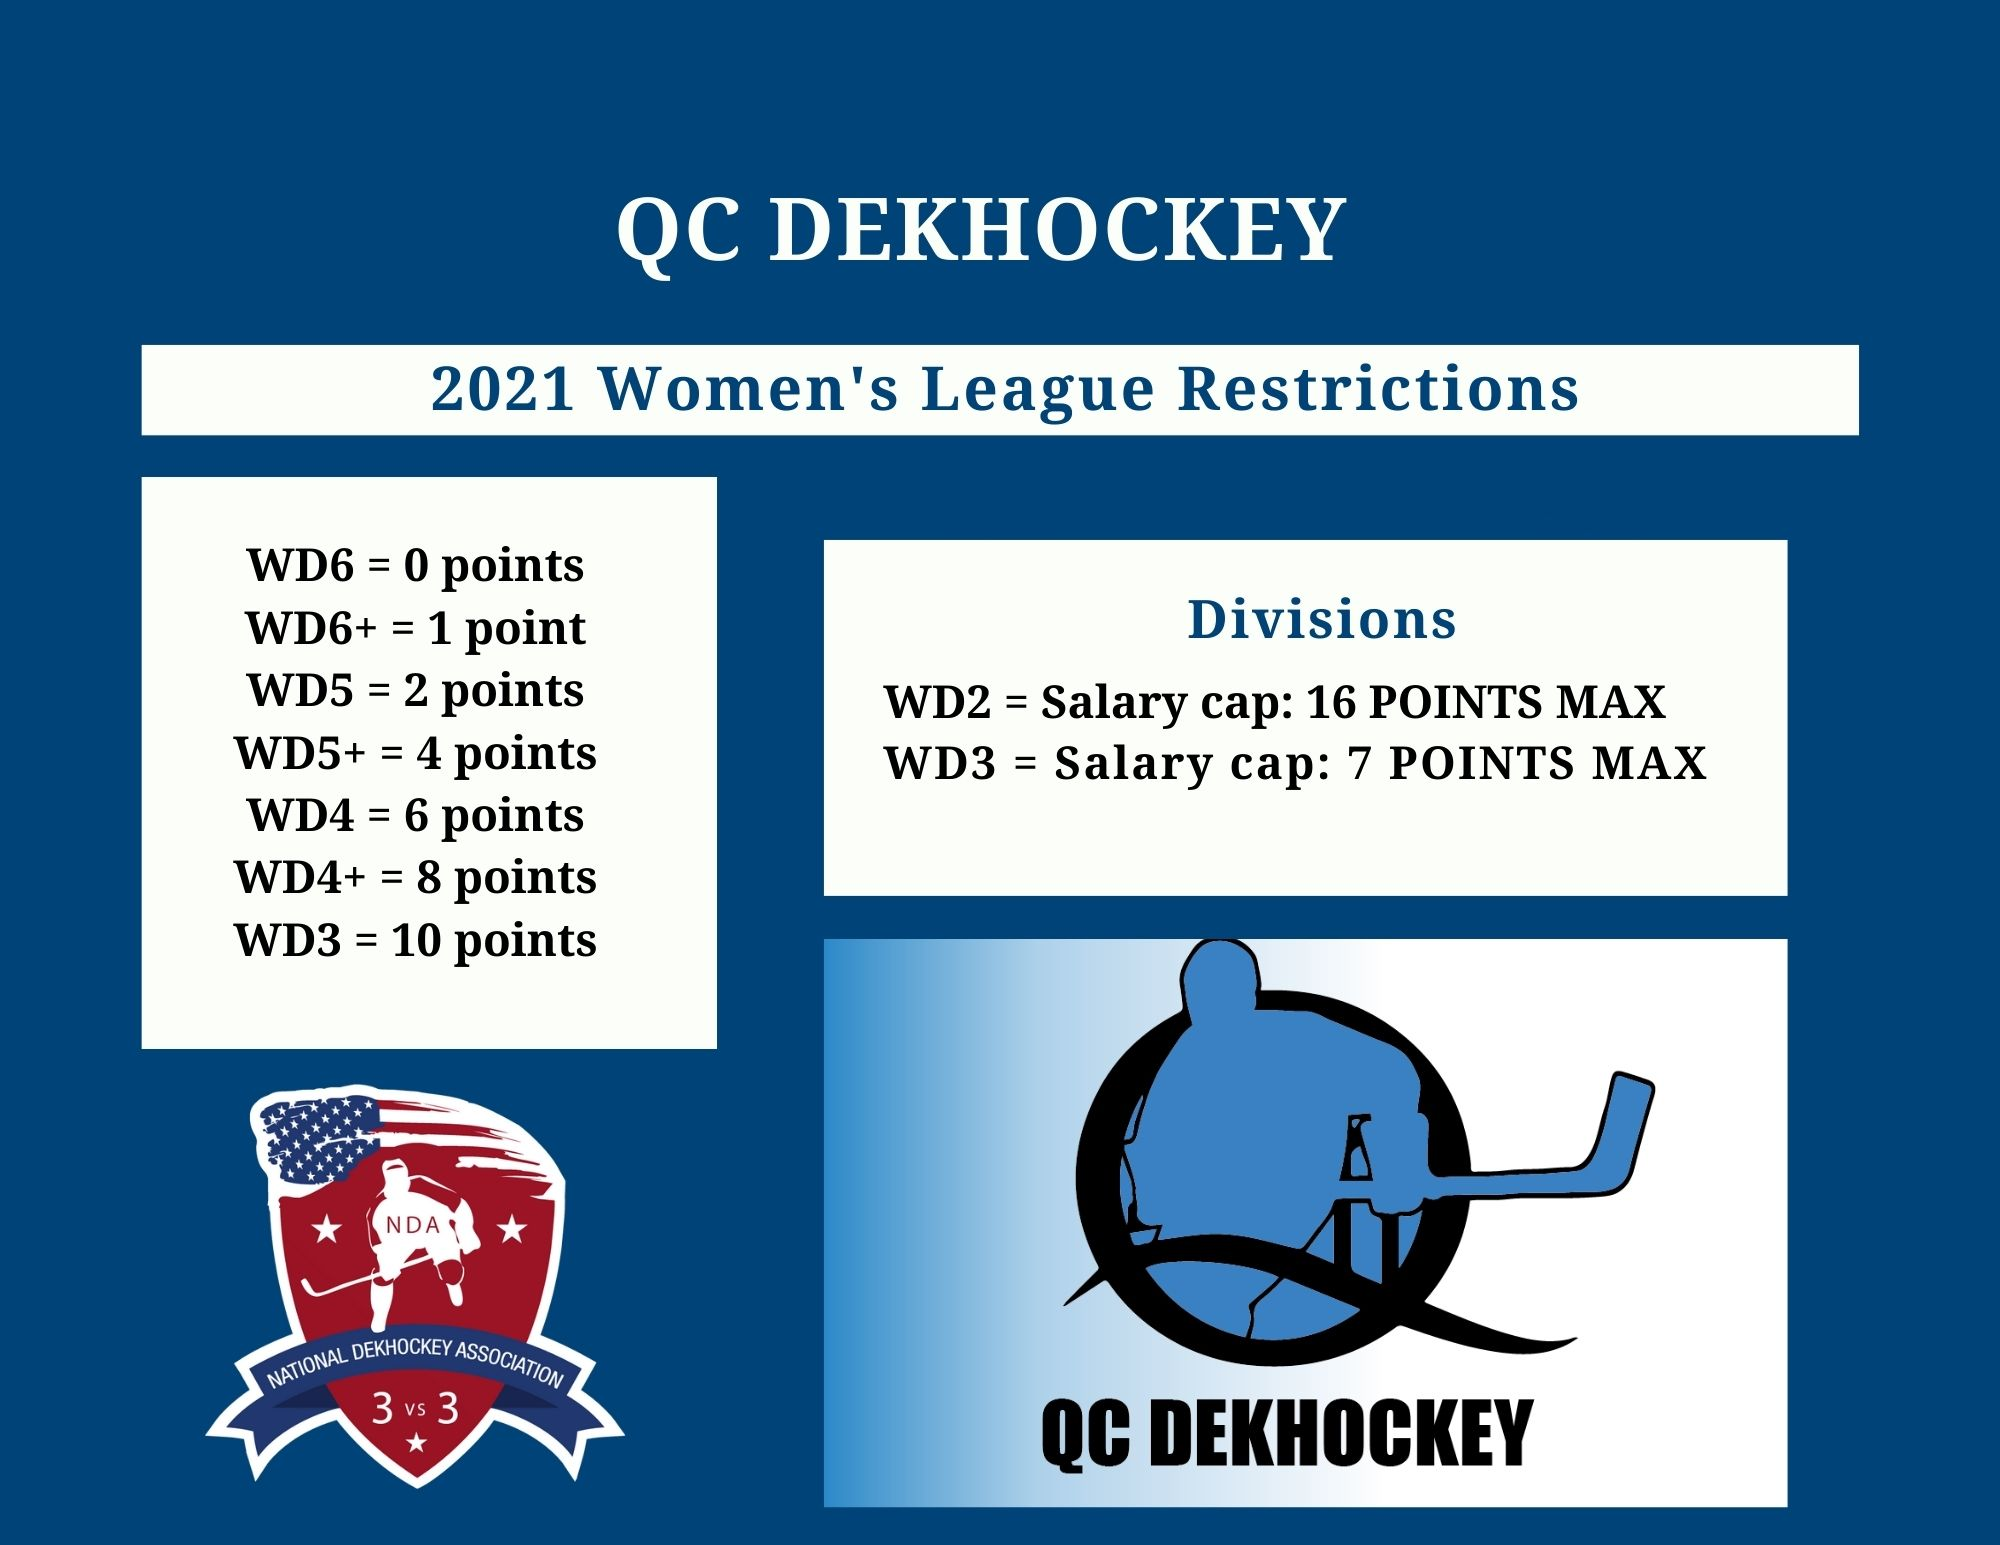 Qc Dekhockey.jpg (225 KB)